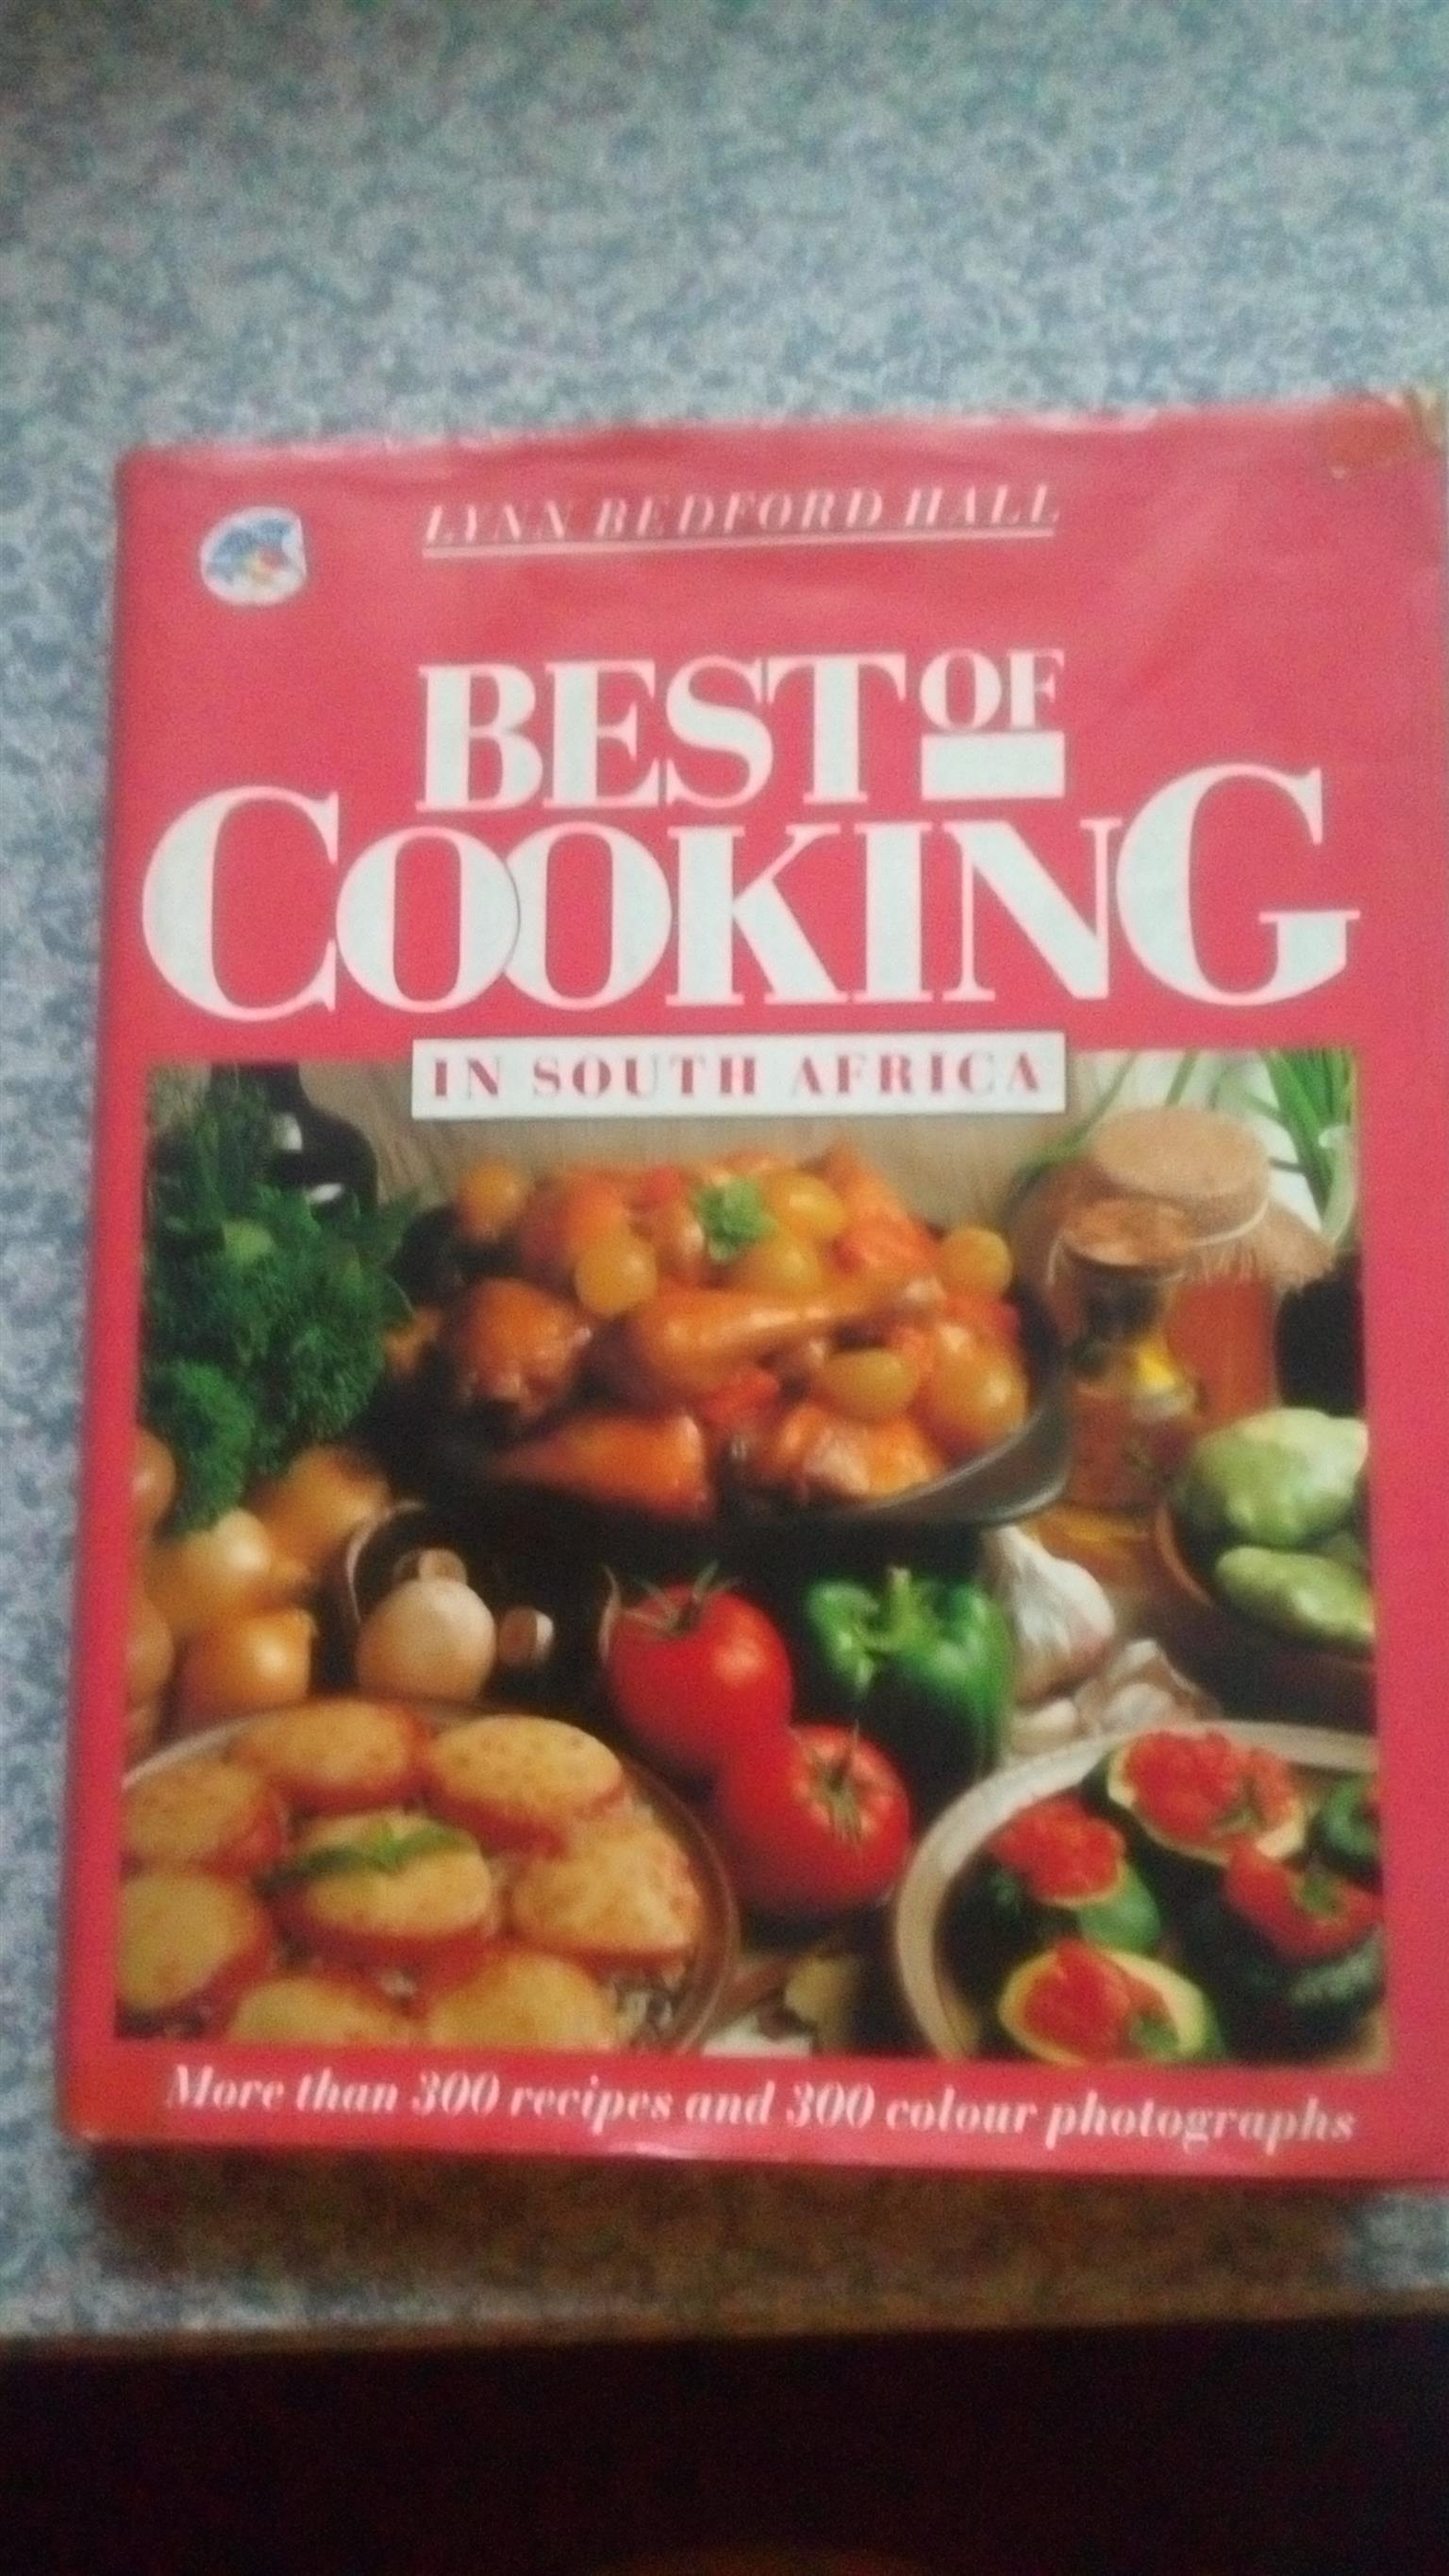 The Best of Cooking in South Africa by Lynn Bedford-Hall